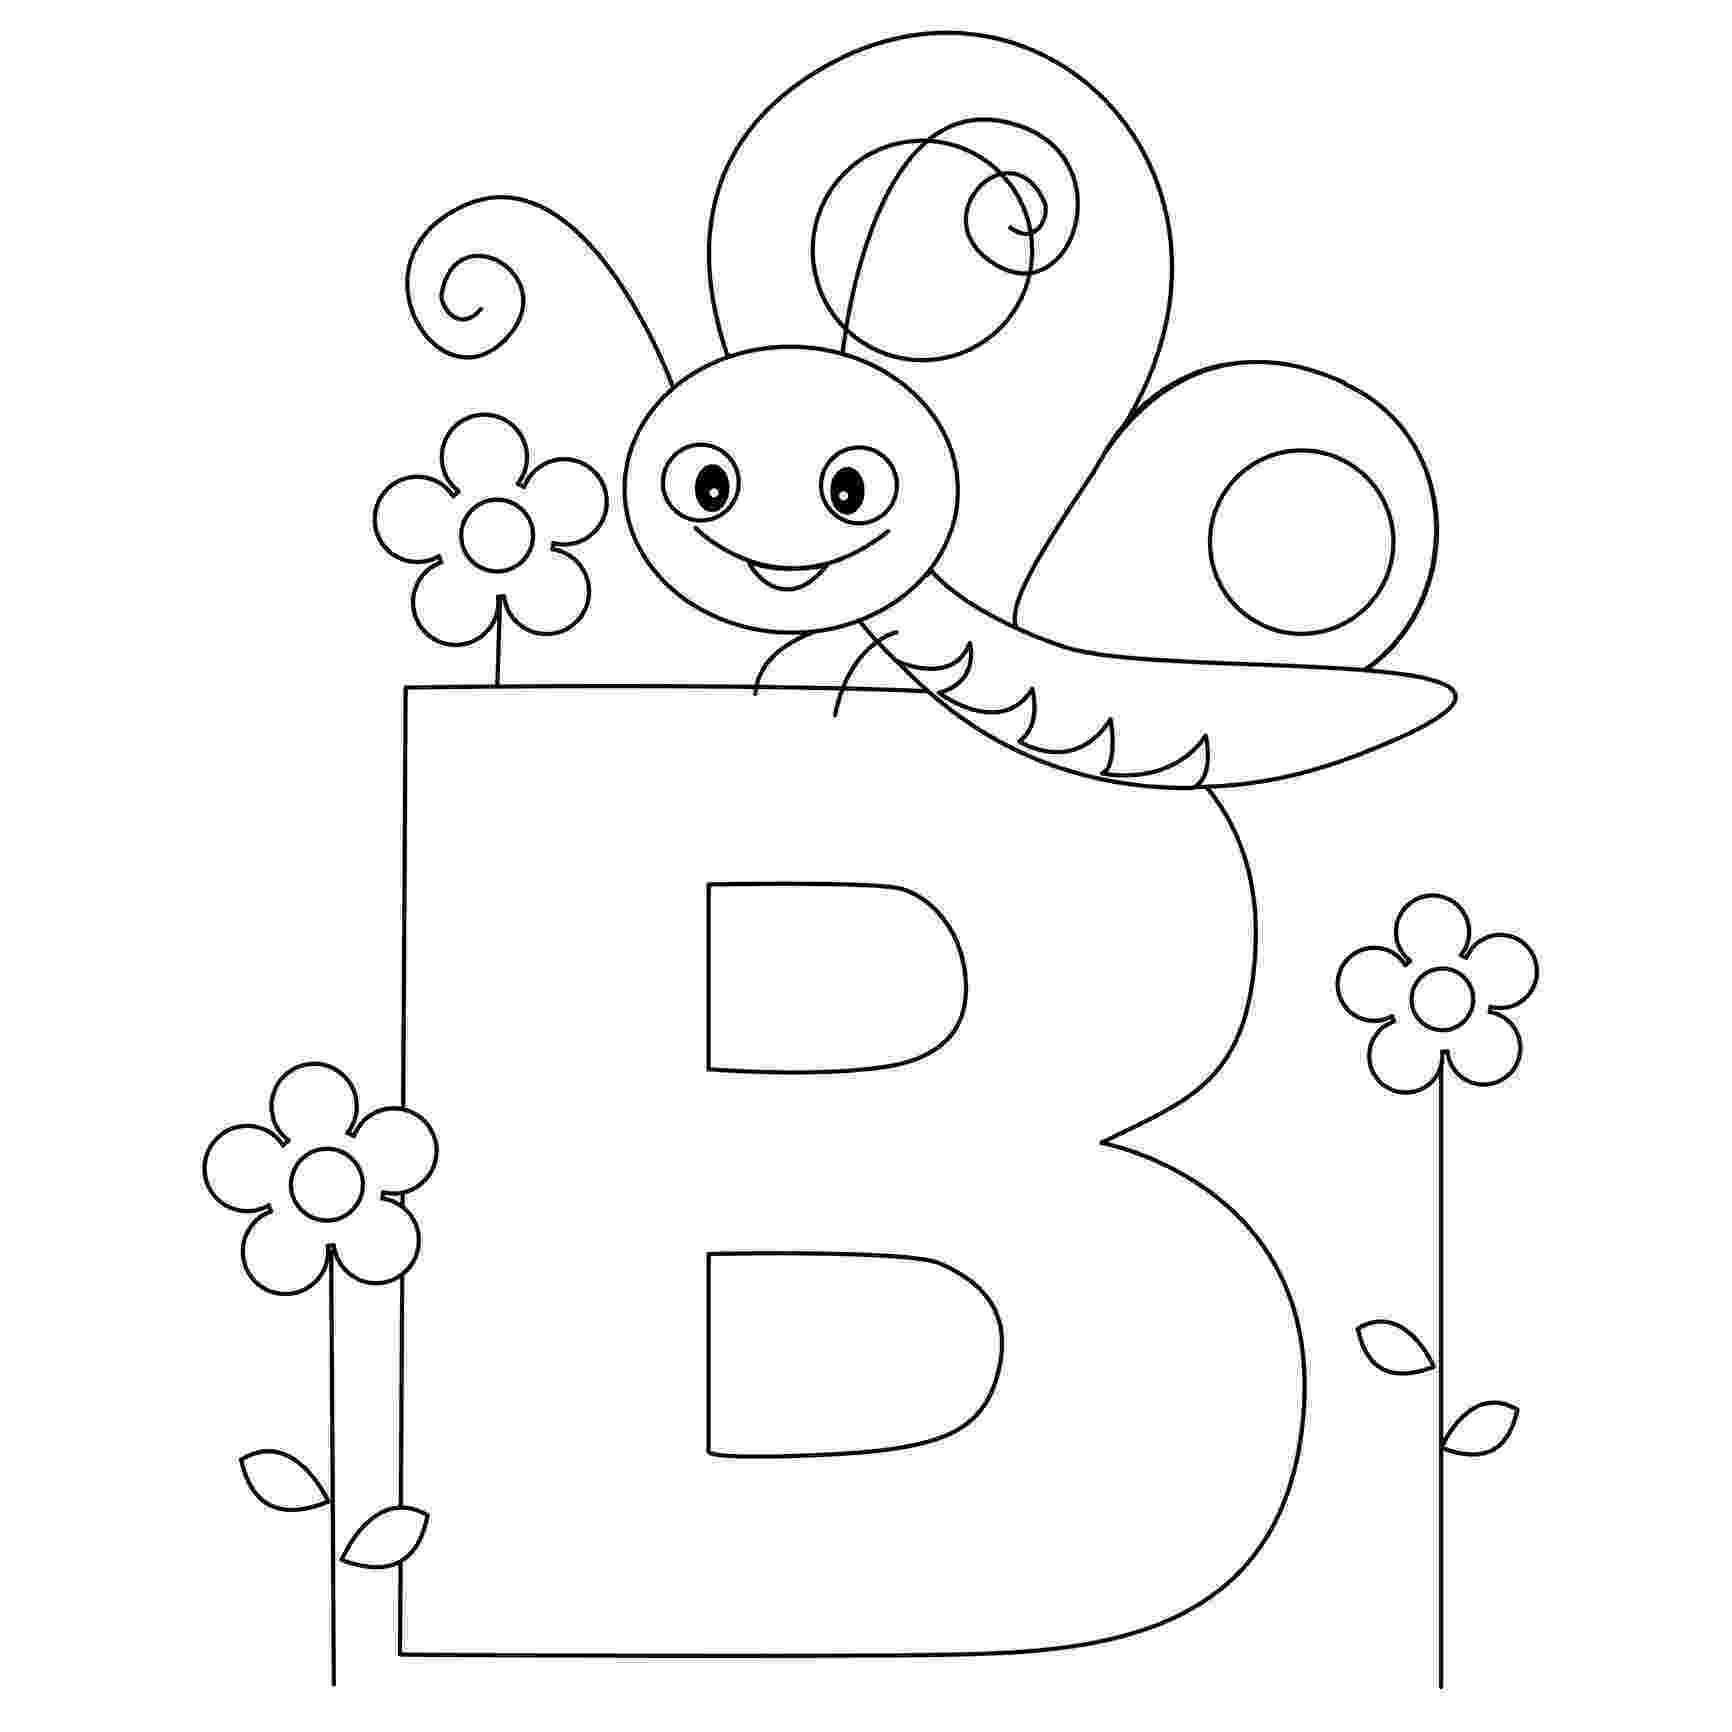 coloring pages with the letter b free printable alphabet coloring pages for kids best the letter b with pages coloring